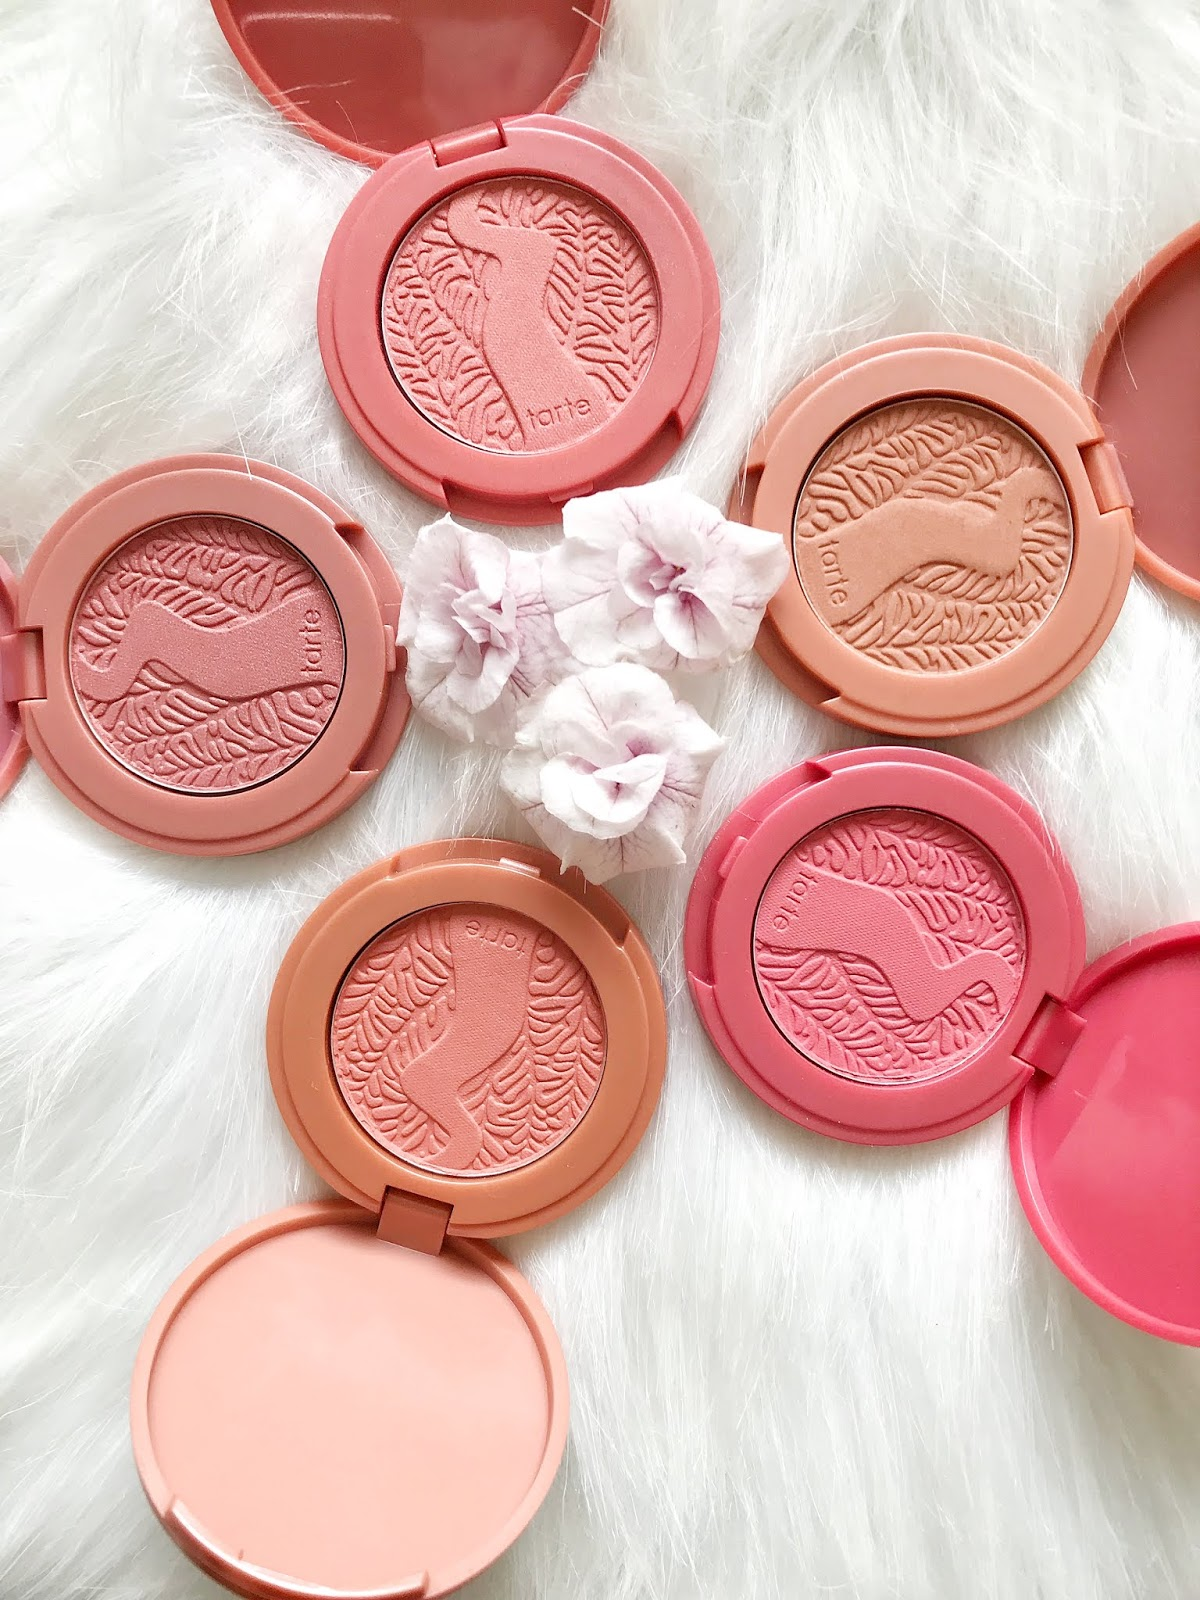 Tarte Cheek Charmers Deluxe set, Tarte Exposed highlighter, Tarte Amazonian clay 12-hour  blush